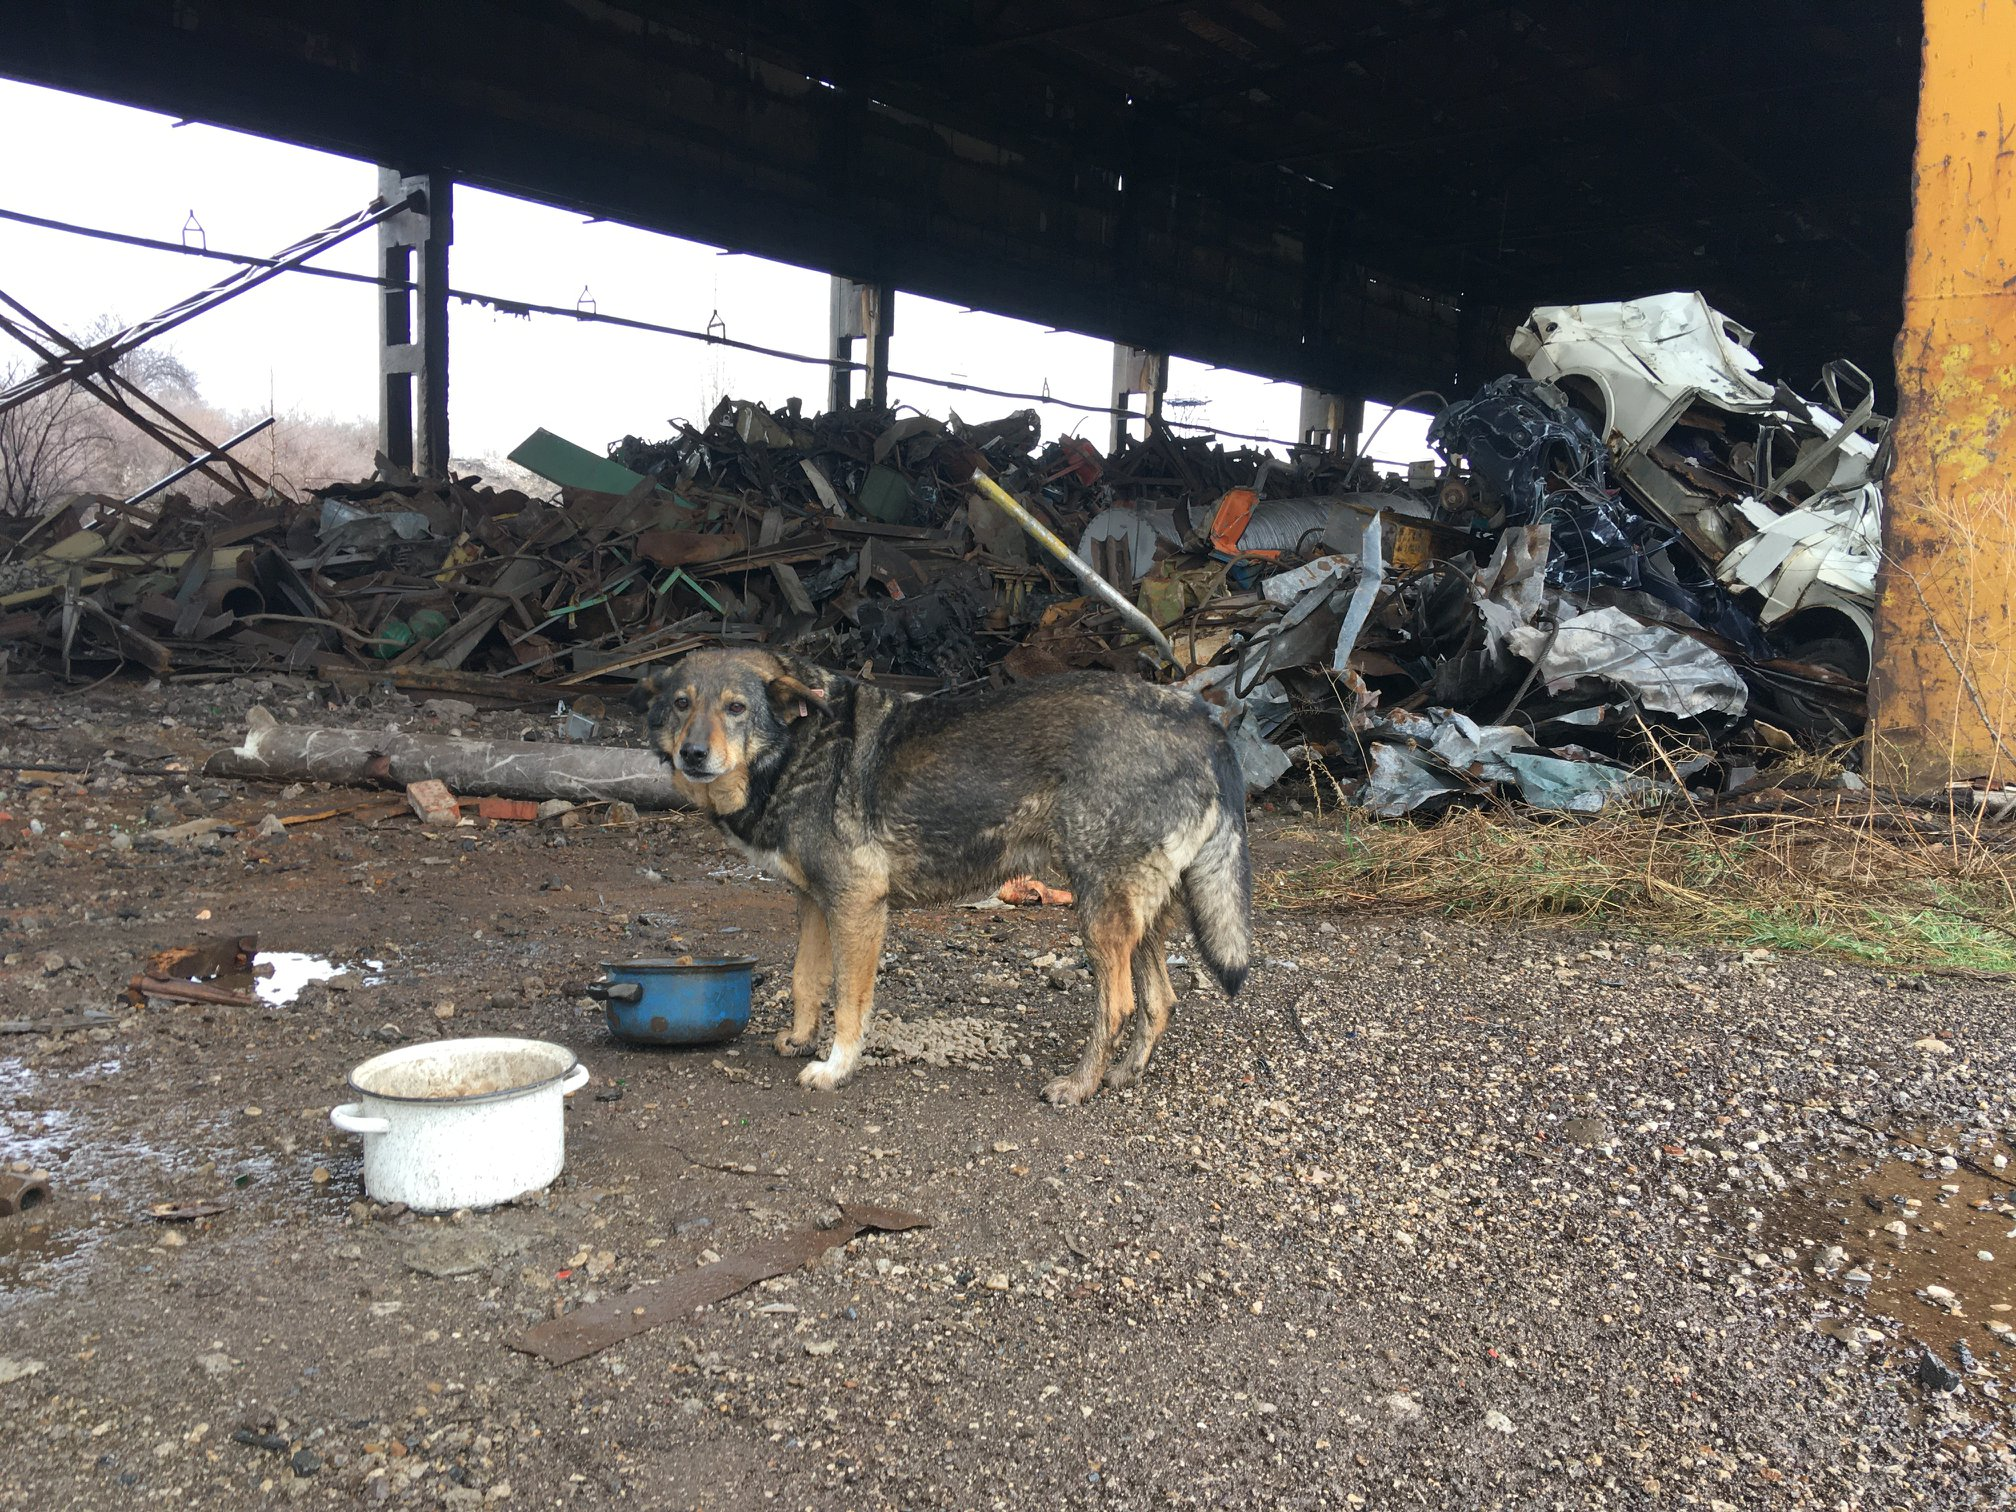 the desolate Kremikovtsi site where dogs live without any humans